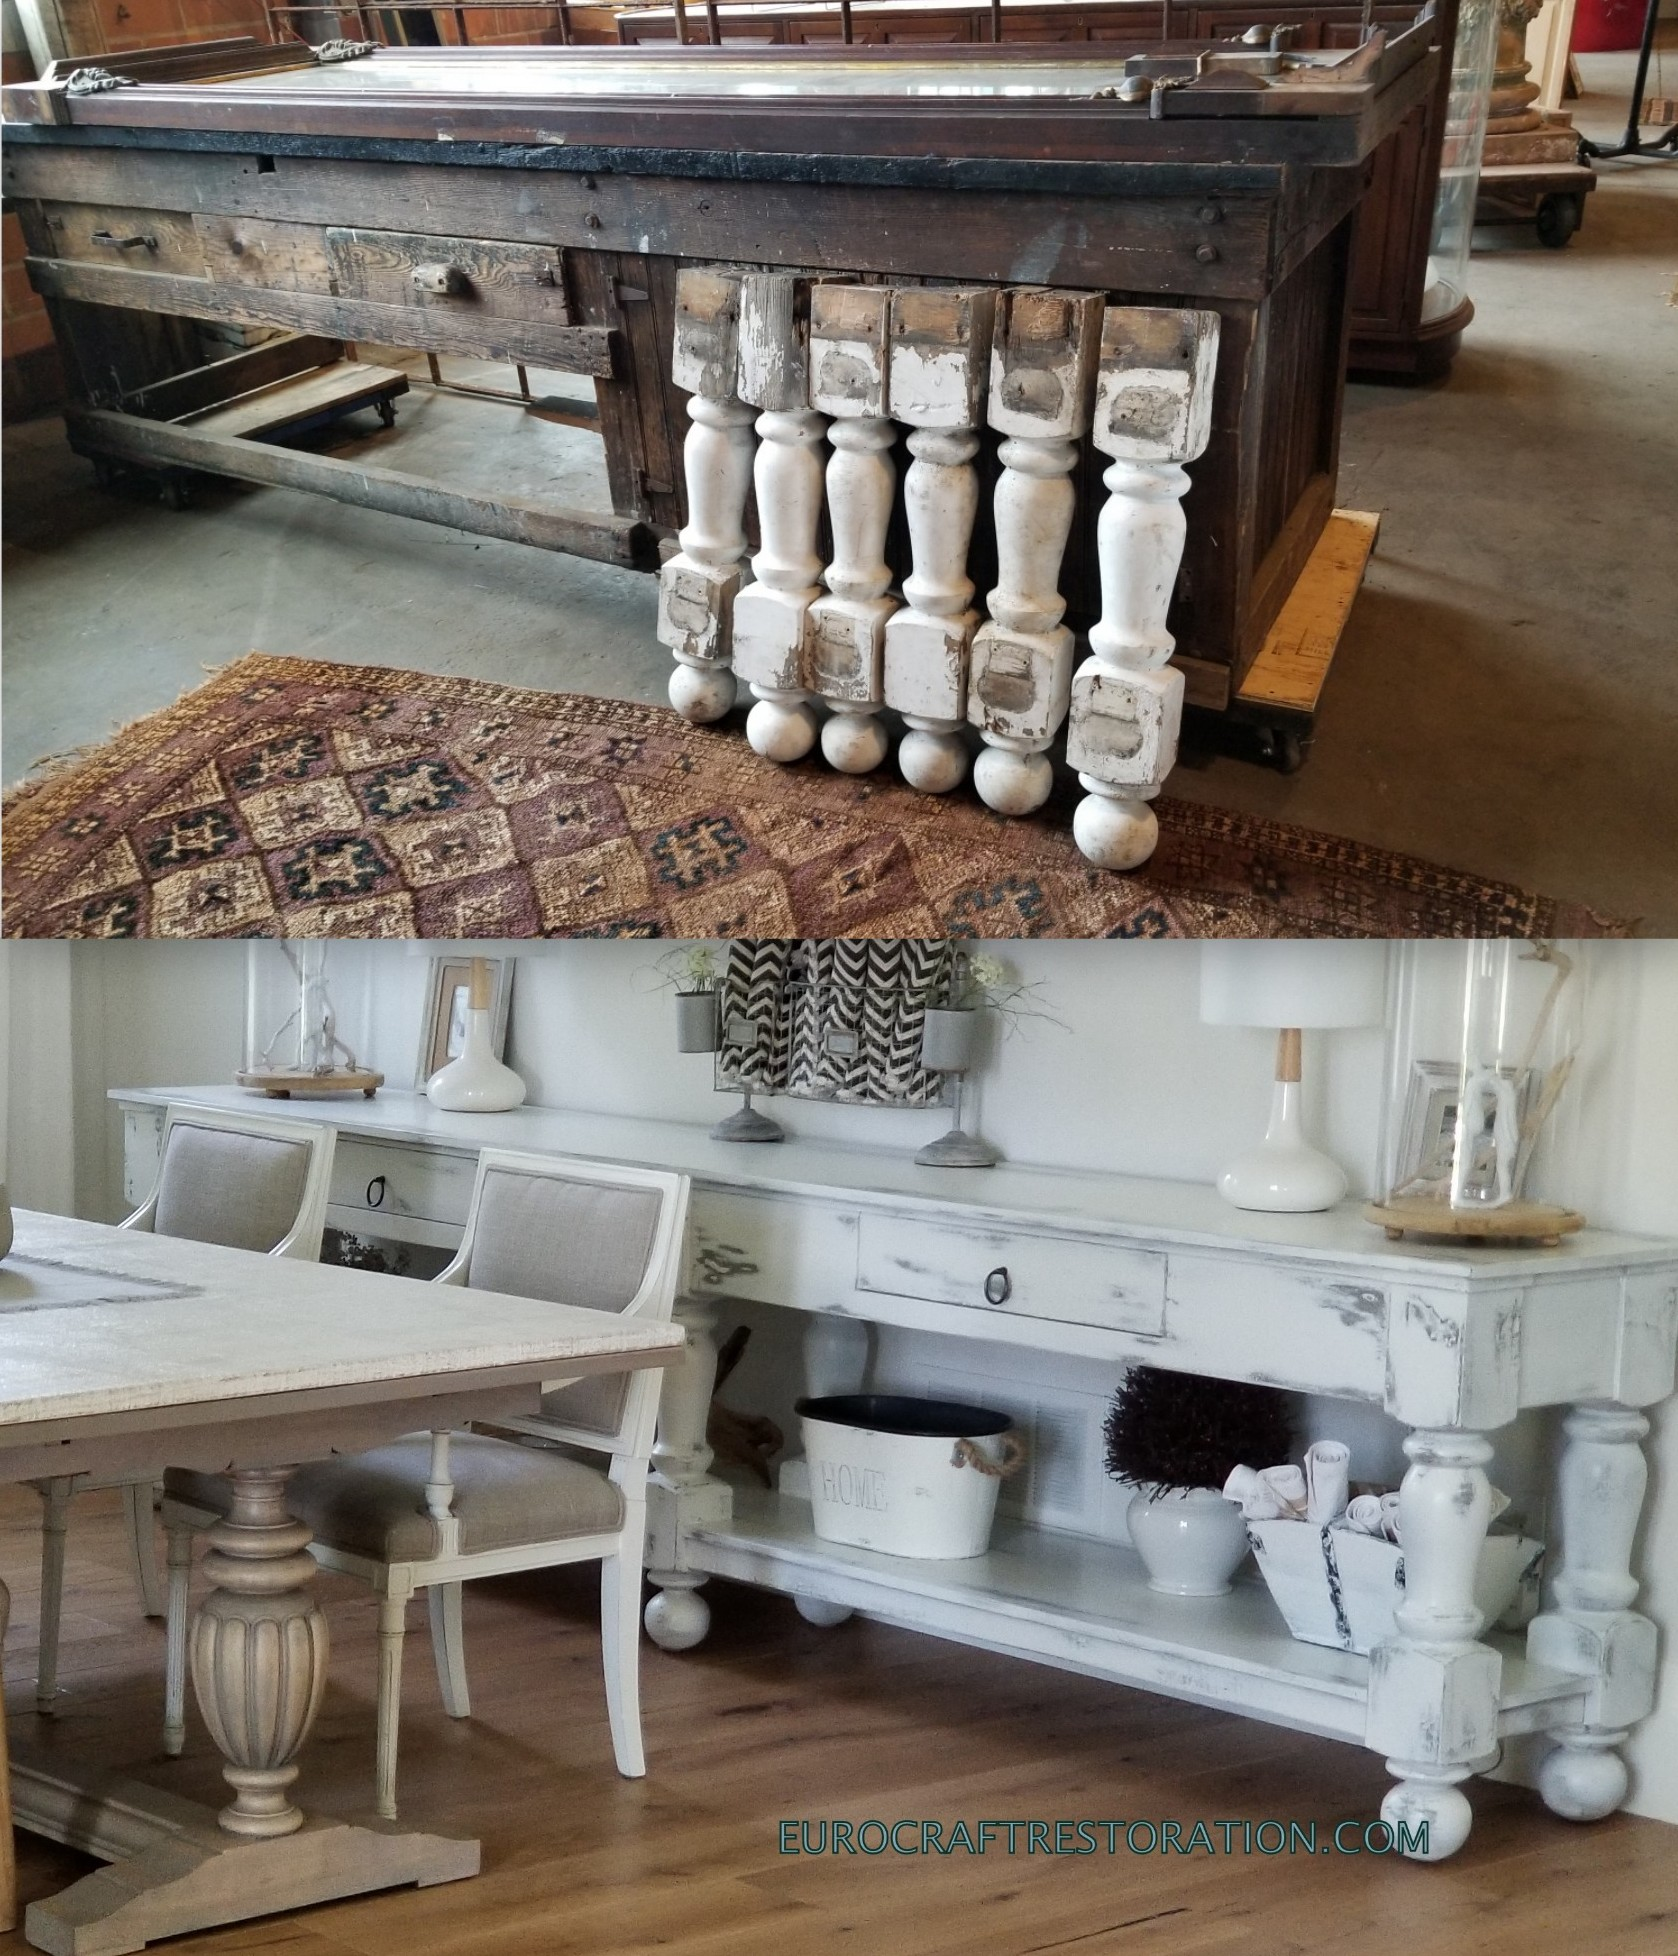 RECLINED STAIRCASE POSTS FROM BD SALVAGE USED TO BUILD NEW 11 FEET SIDEBOARD